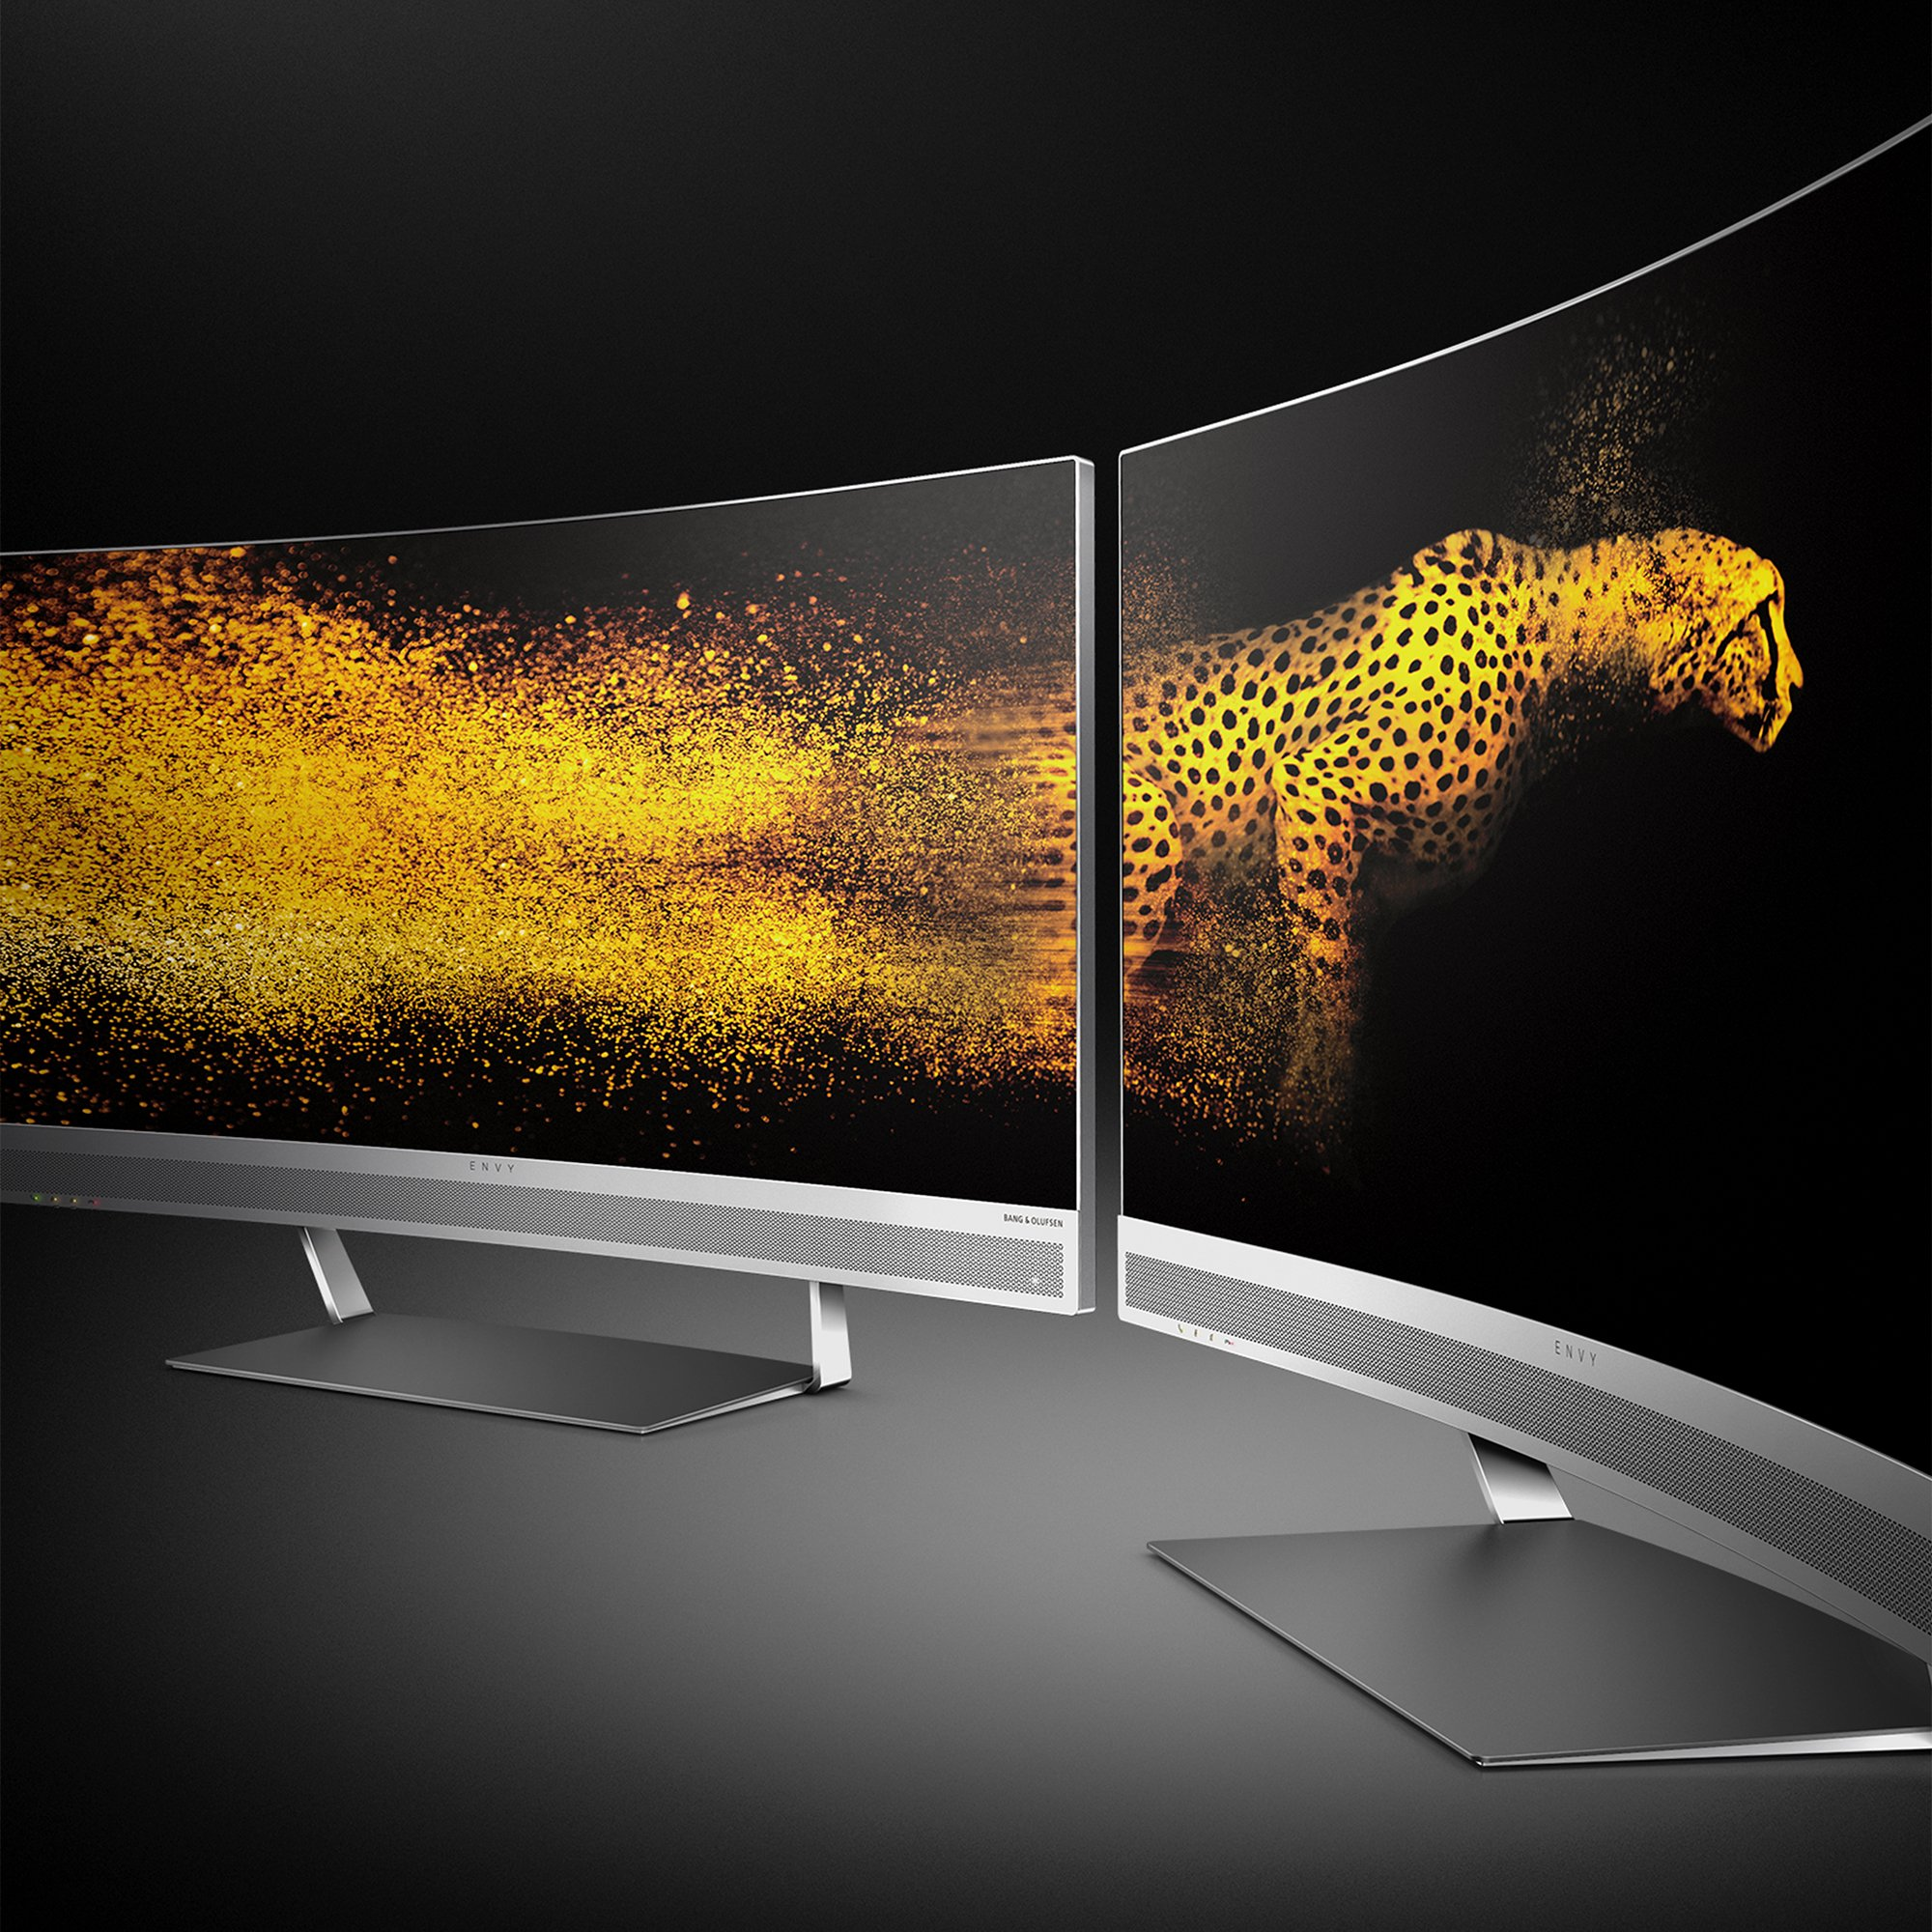 HP ENVY 34-inch Ultra WQHD Curved Monitor with AMD Freesync Technology, Webcam and Audio by Bang & Olufsen (Black/Silver) by HP (Image #10)